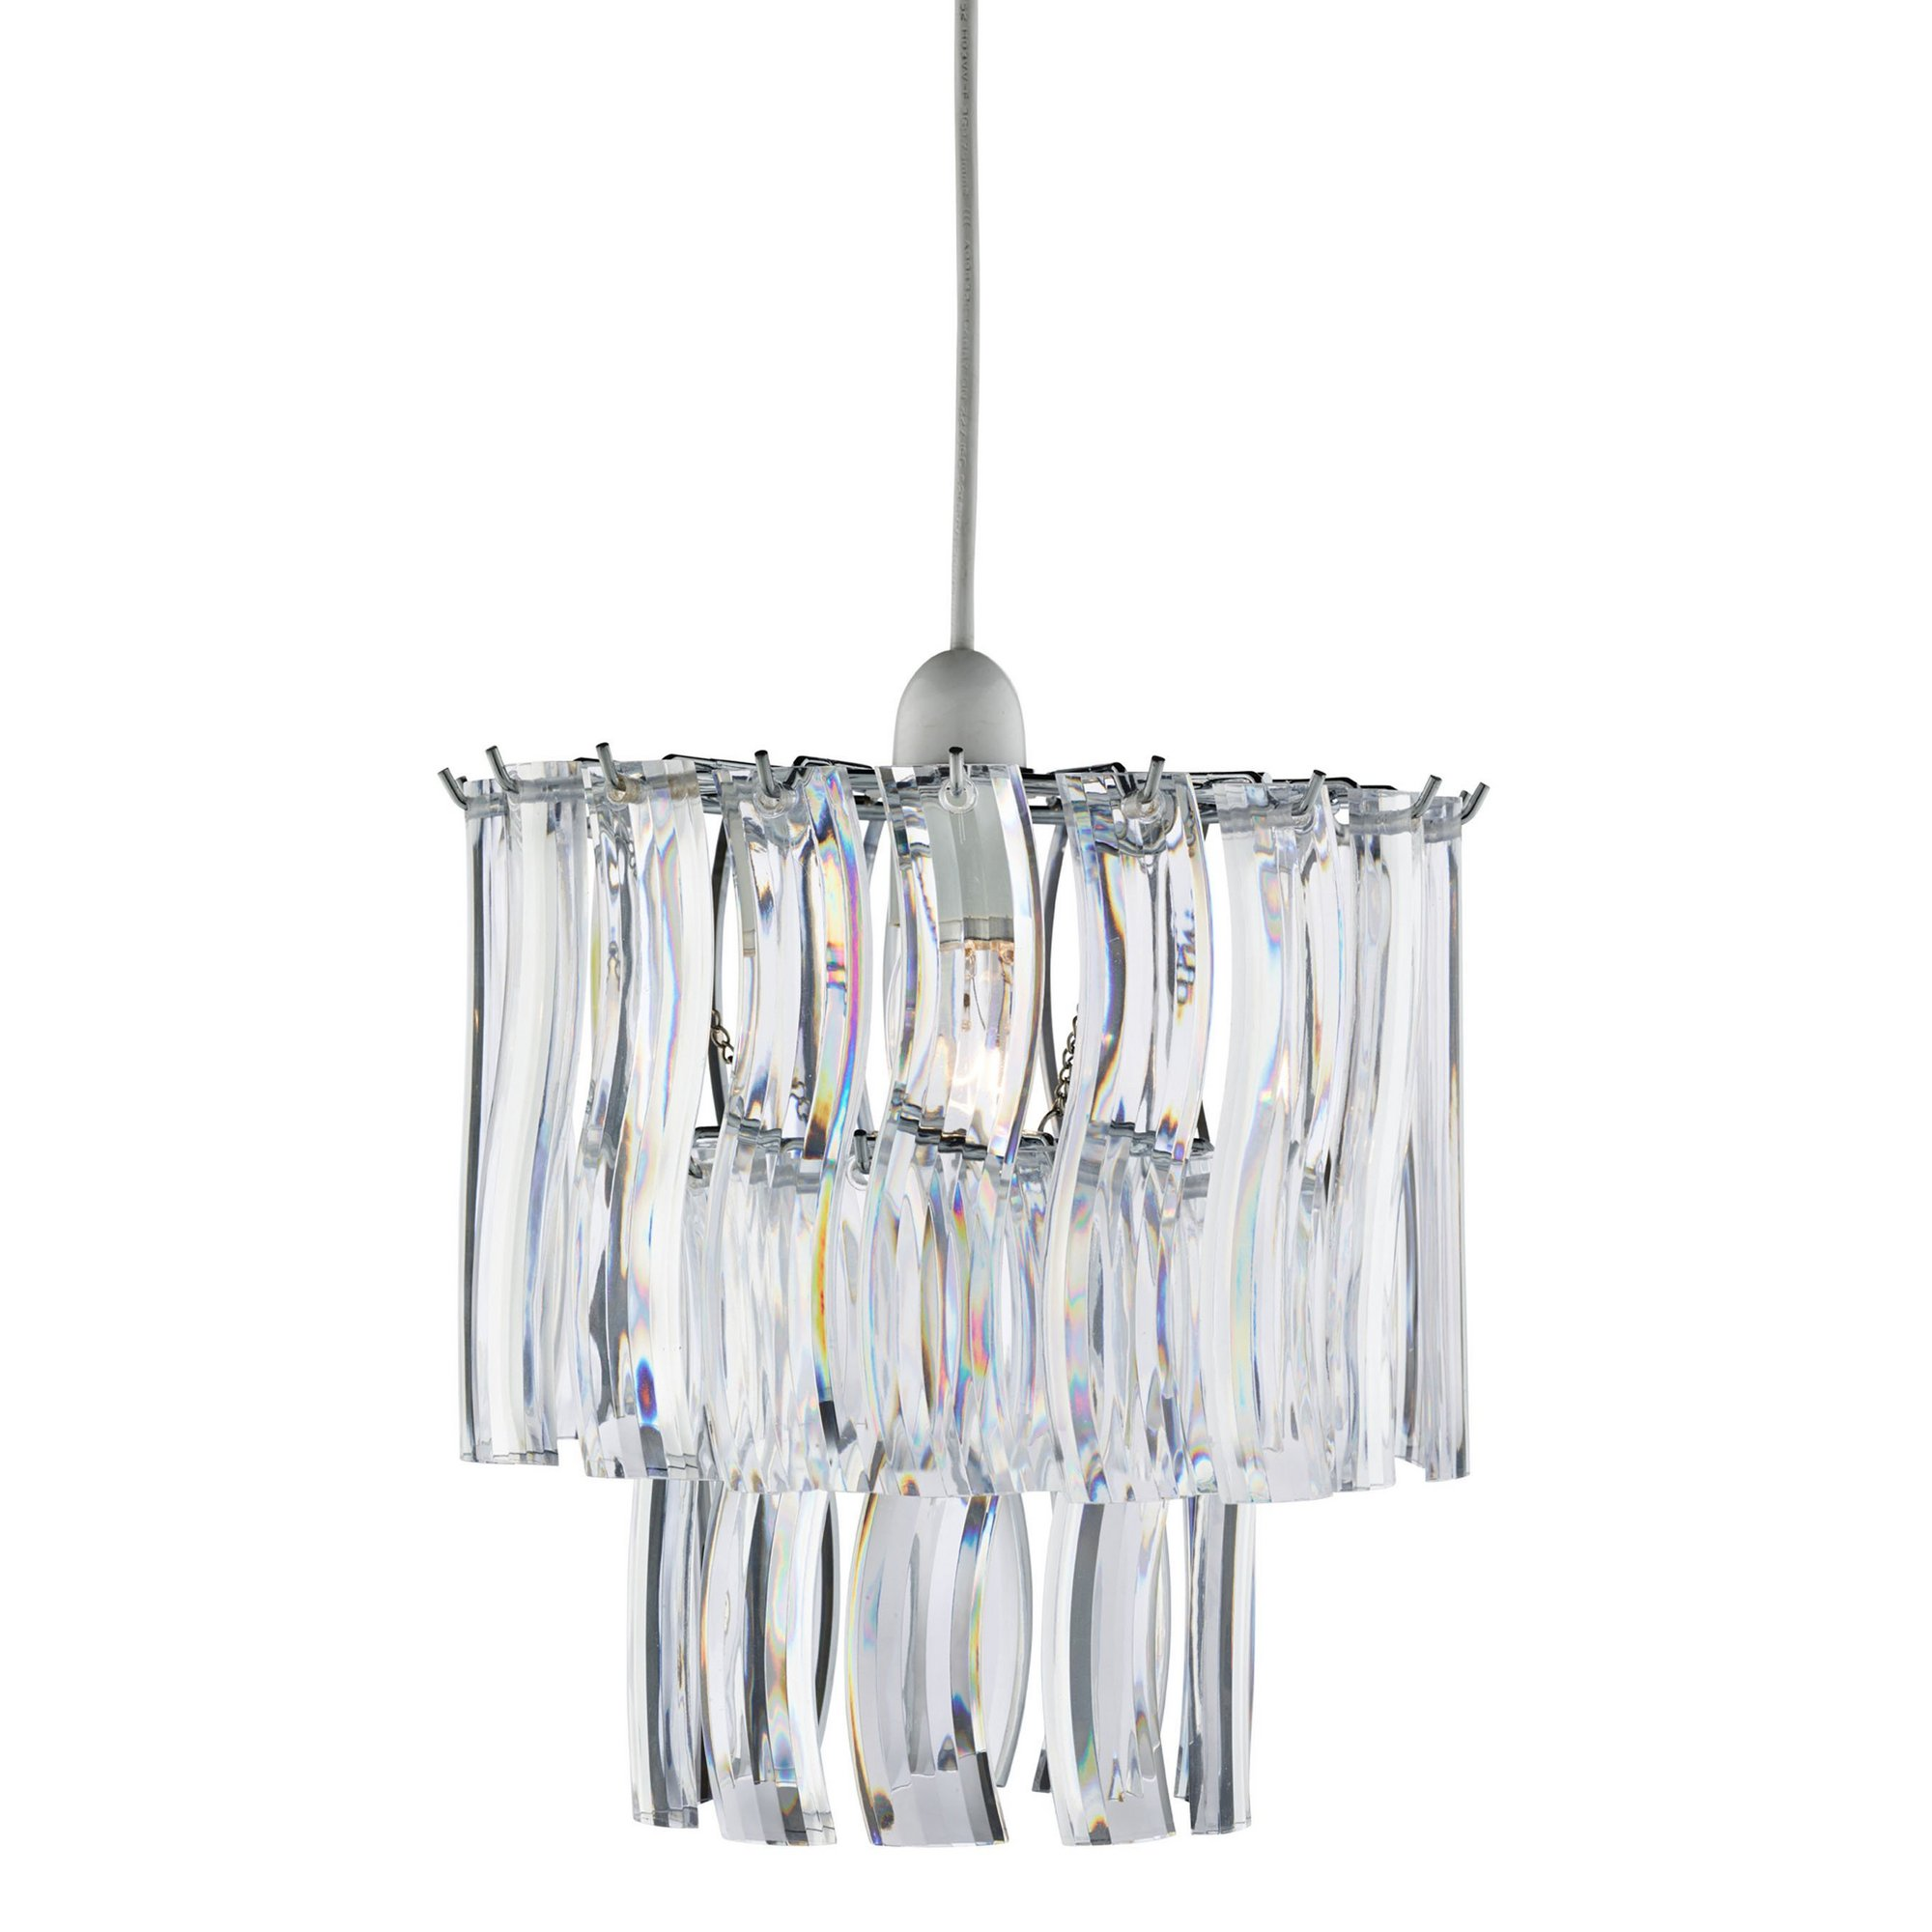 Image of 2 Tier Easy Fit Light Shade